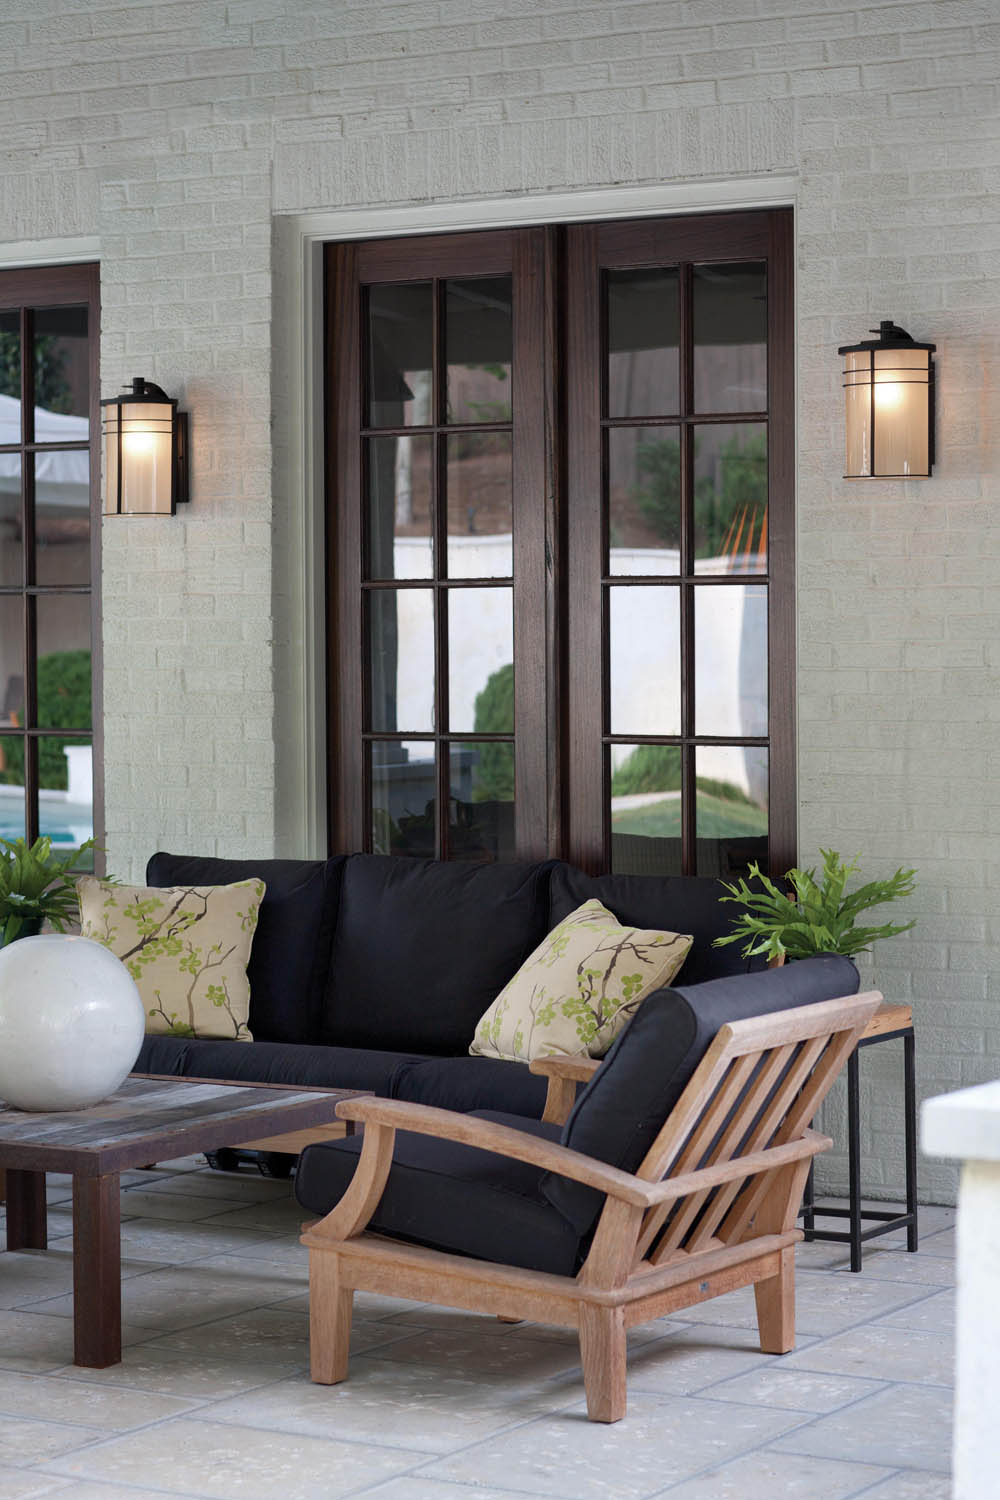 Selecting Outdoor Lighting With Hinkley